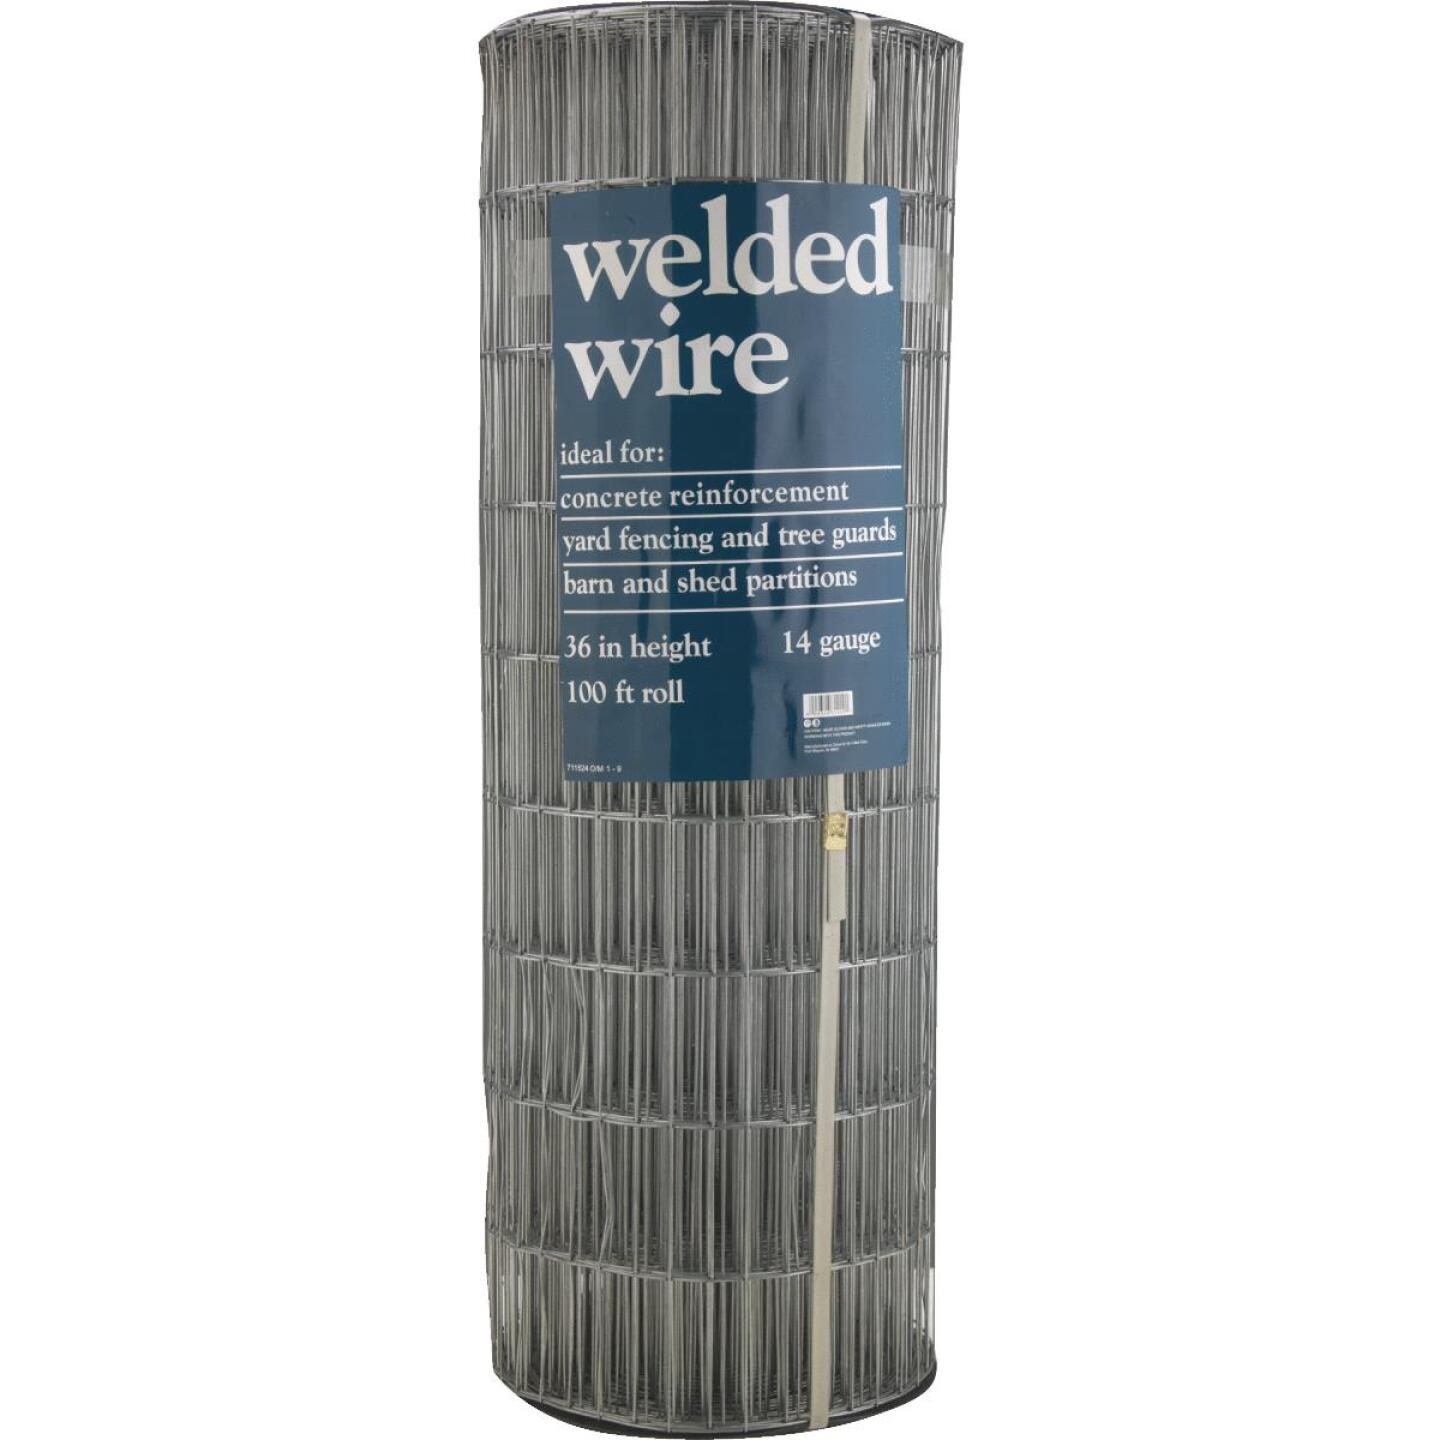 72 In. H. x 100 Ft. L. (2x4) Galvanized Welded Wire Fence Image 2